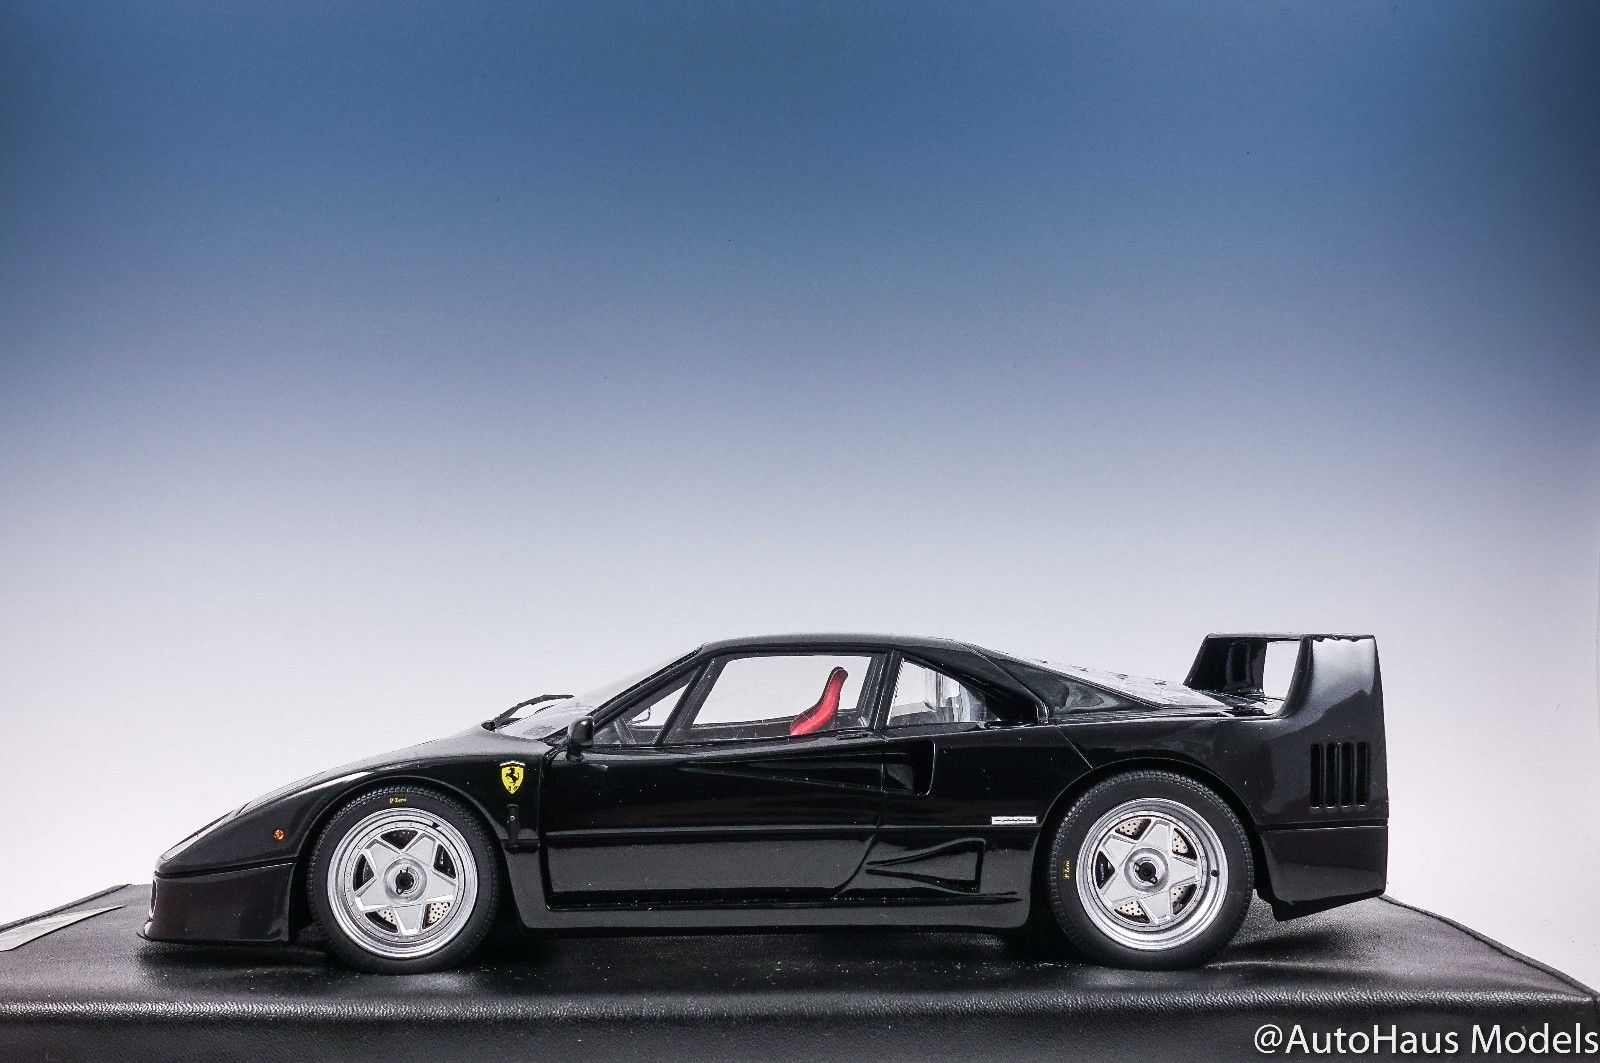 Used 1 18 Kyosho Ferrari F40 Black Leather Base Resin As Is 2017 2018 Is In Stock And For Sale 24carshop Com